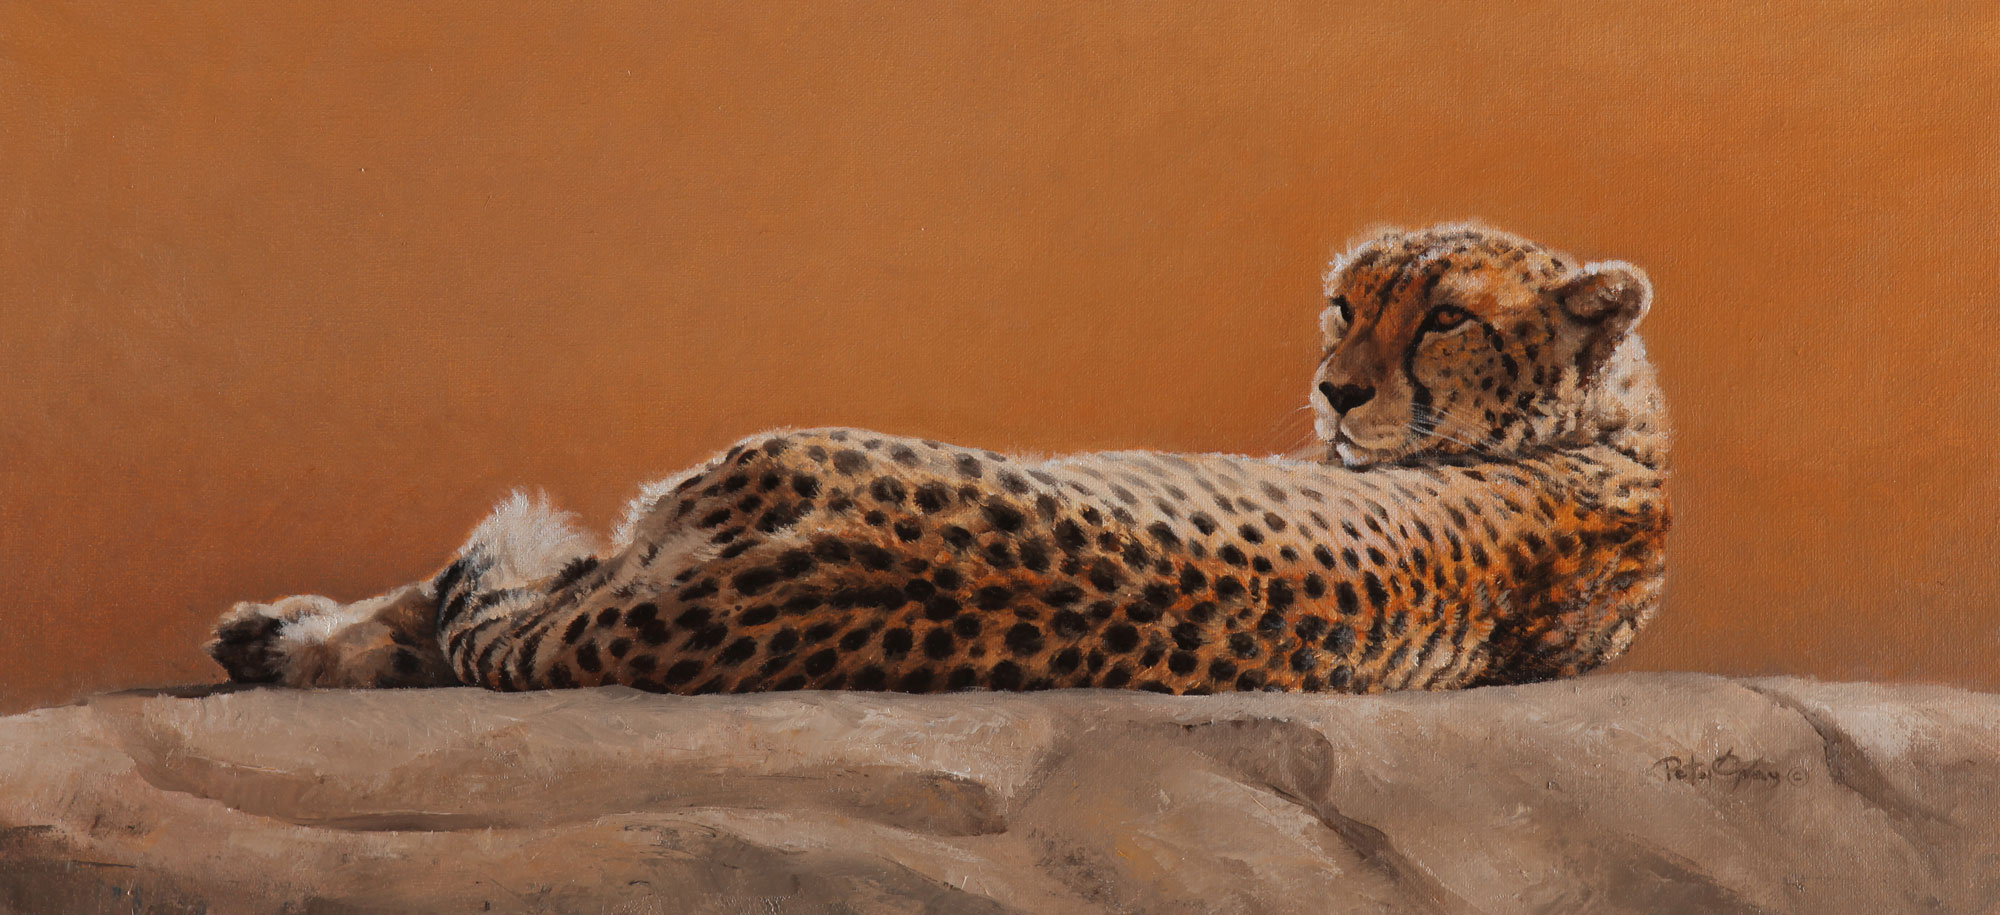 Basking-Cheetah